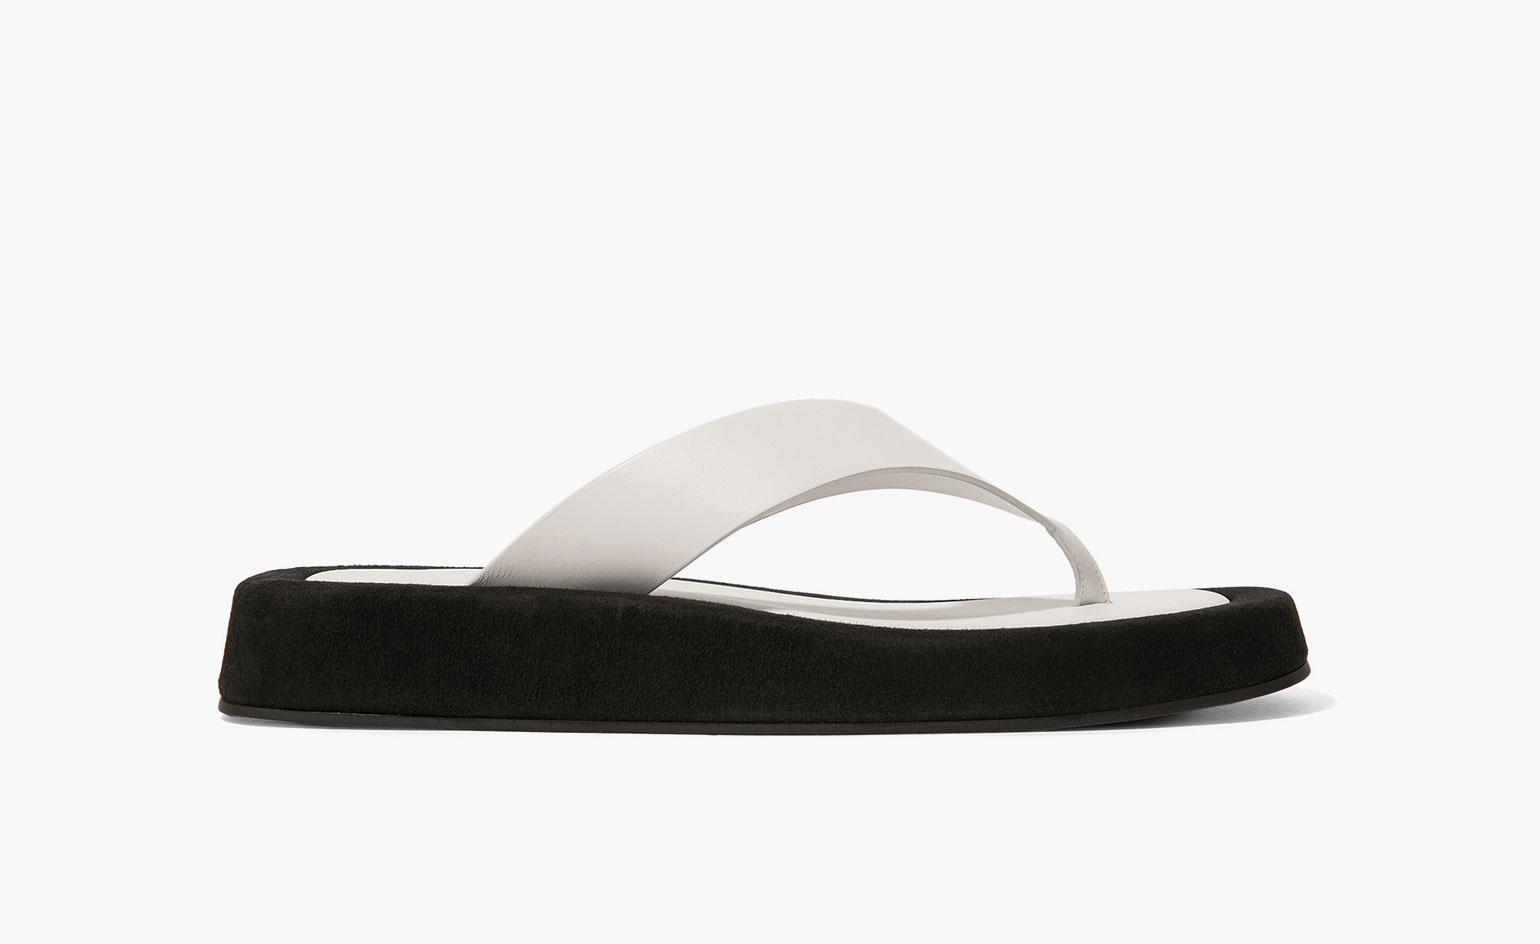 Summer sandals in white flip flop style by The Row